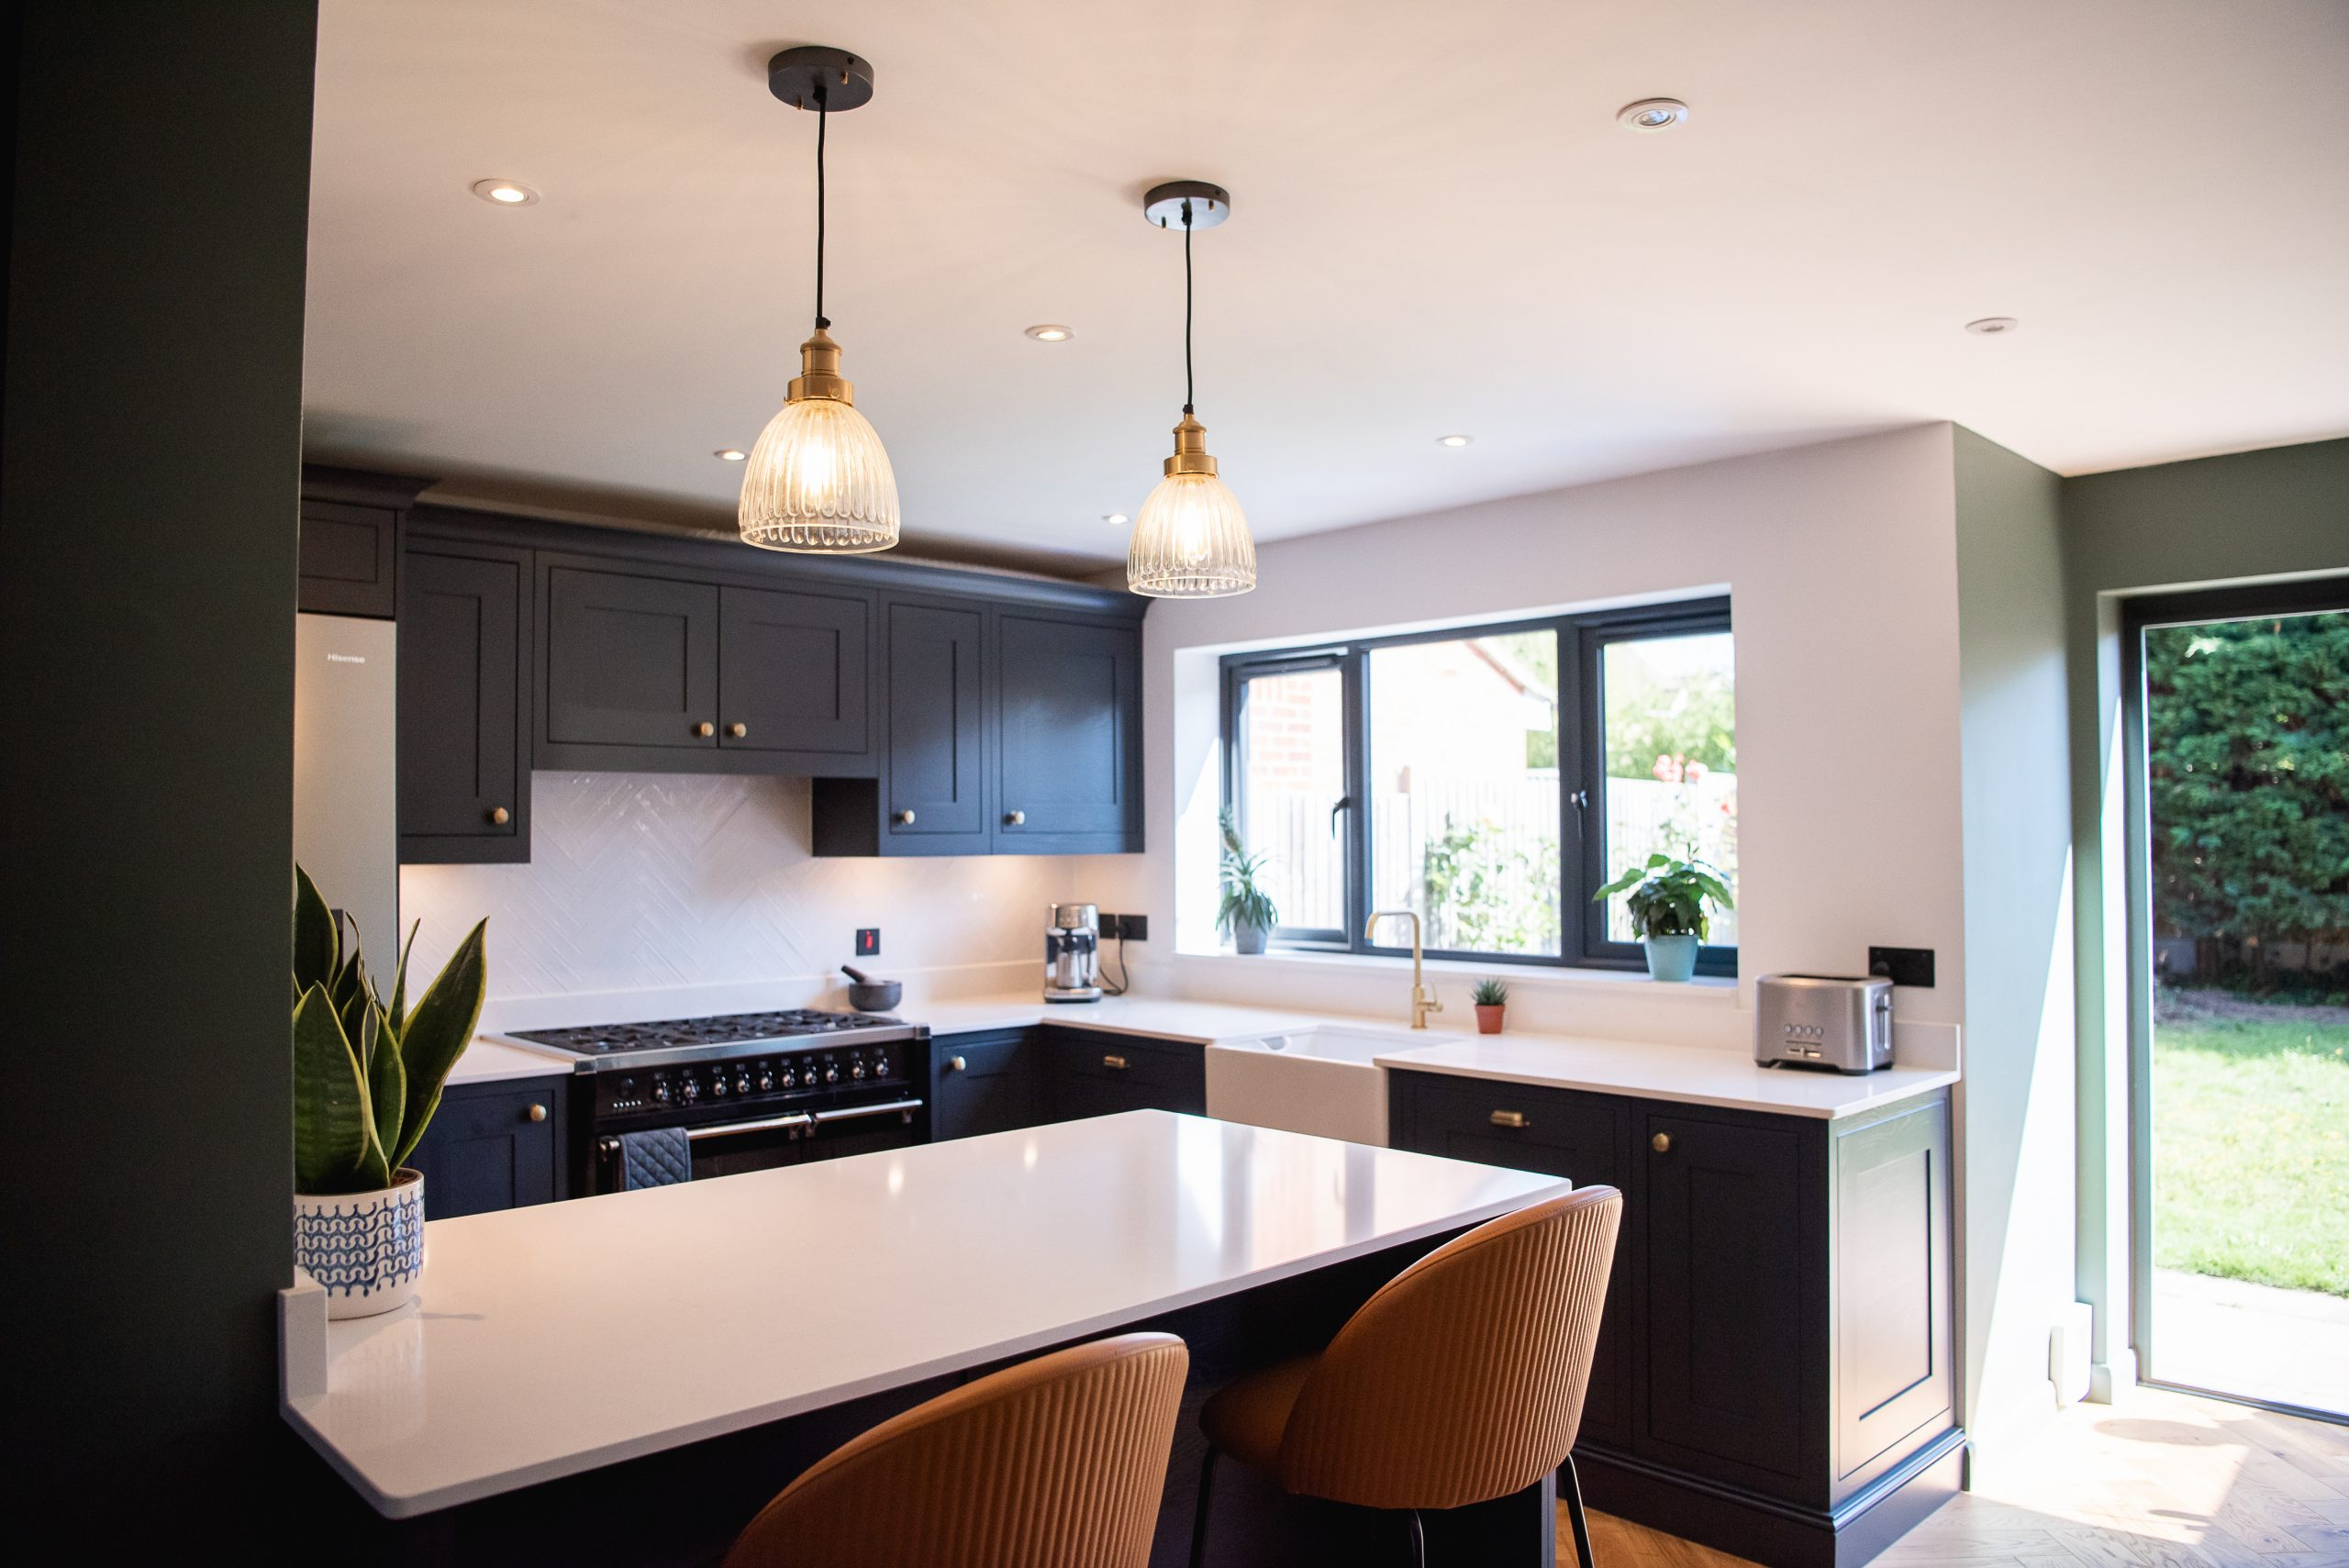 Black shaker kitchen with brass knobs and Silestone worktop and breakfast bar